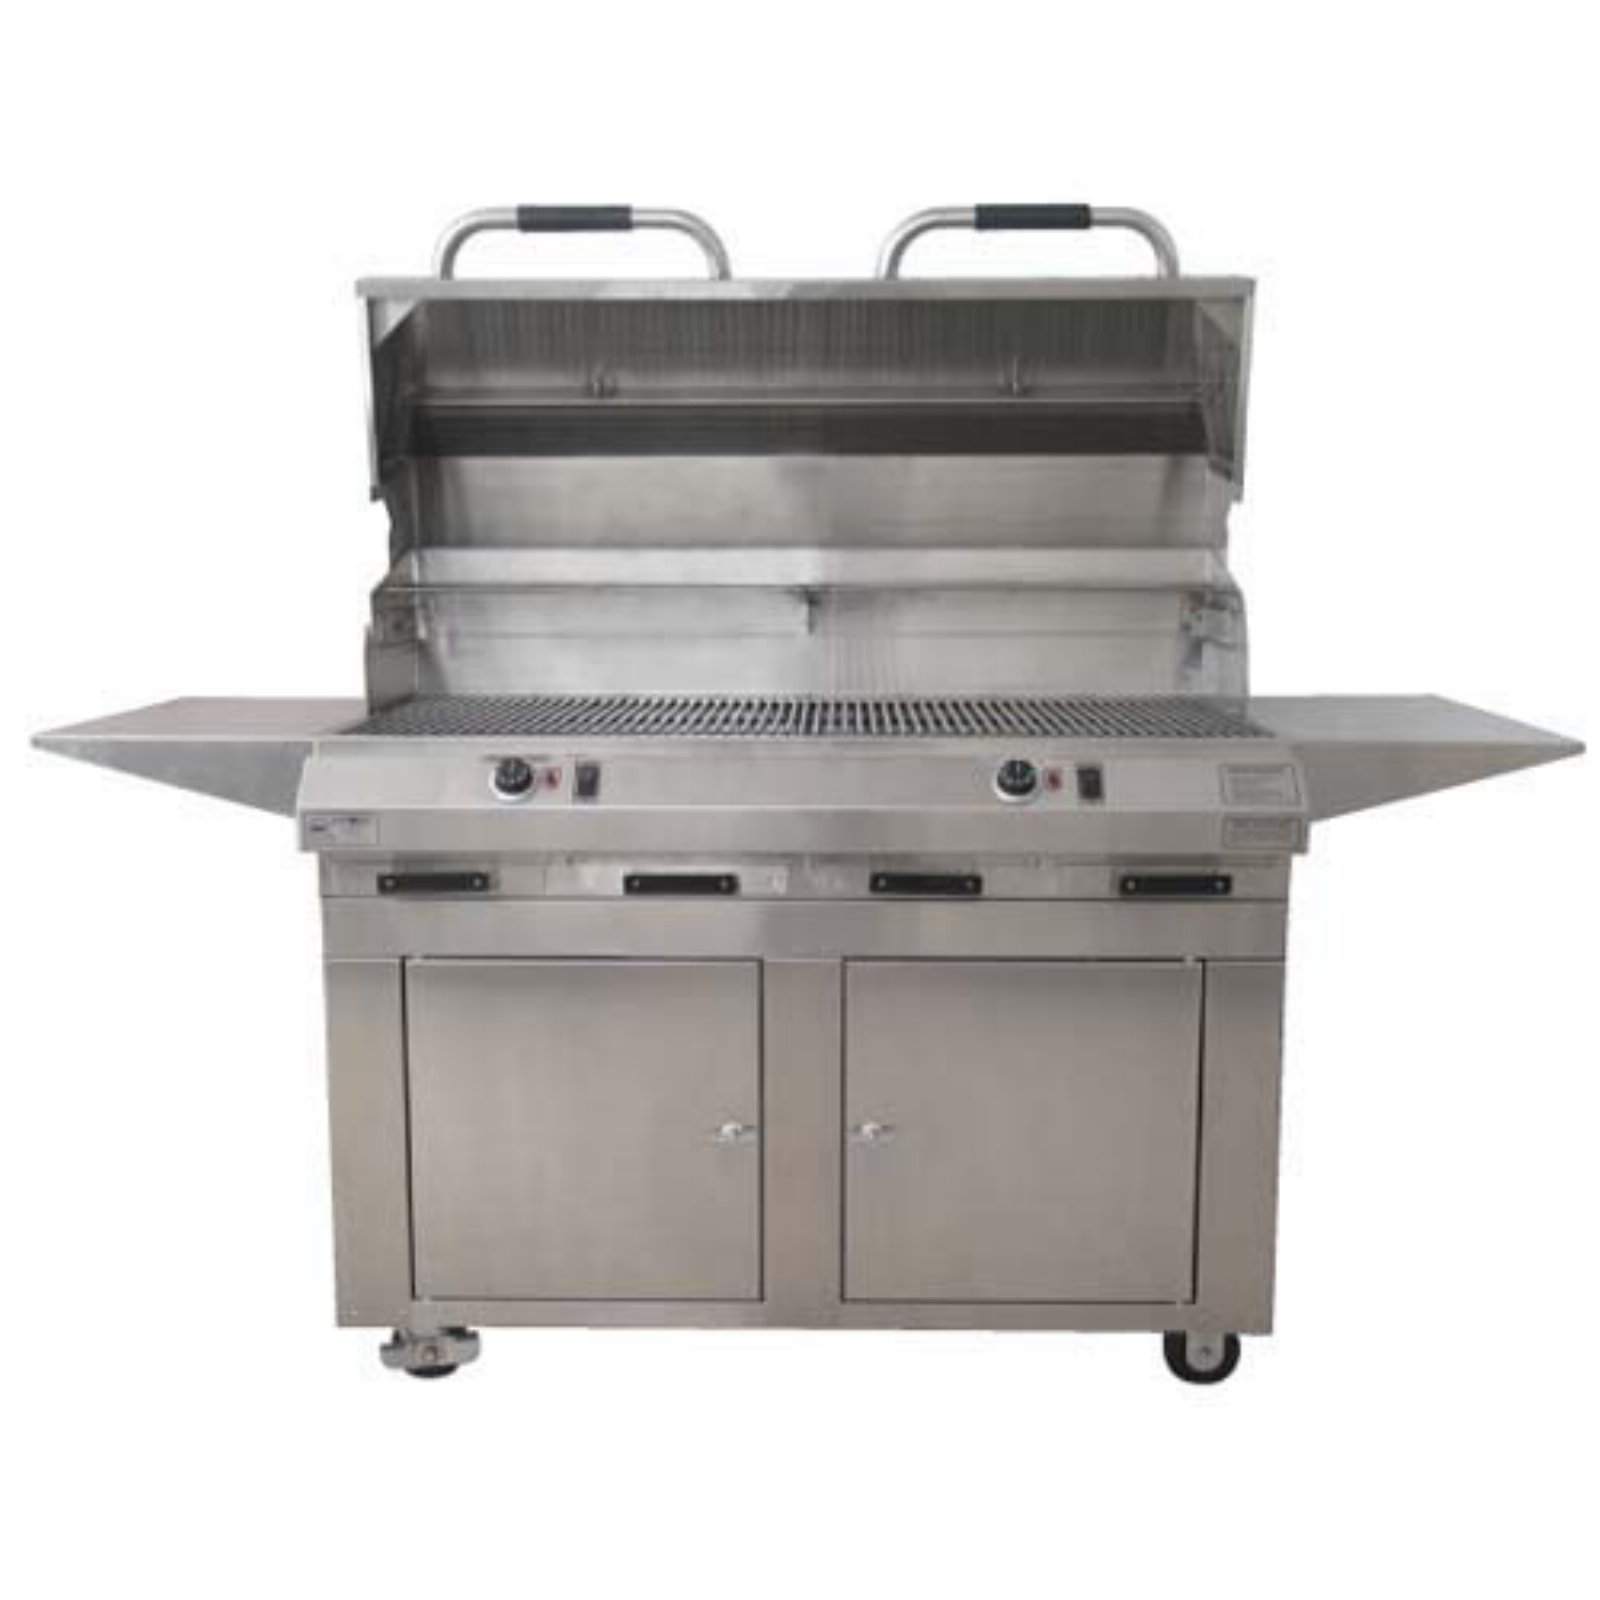 Electri-Chef 48 in. Electric Grill with Cart by Electri - Chef Grill